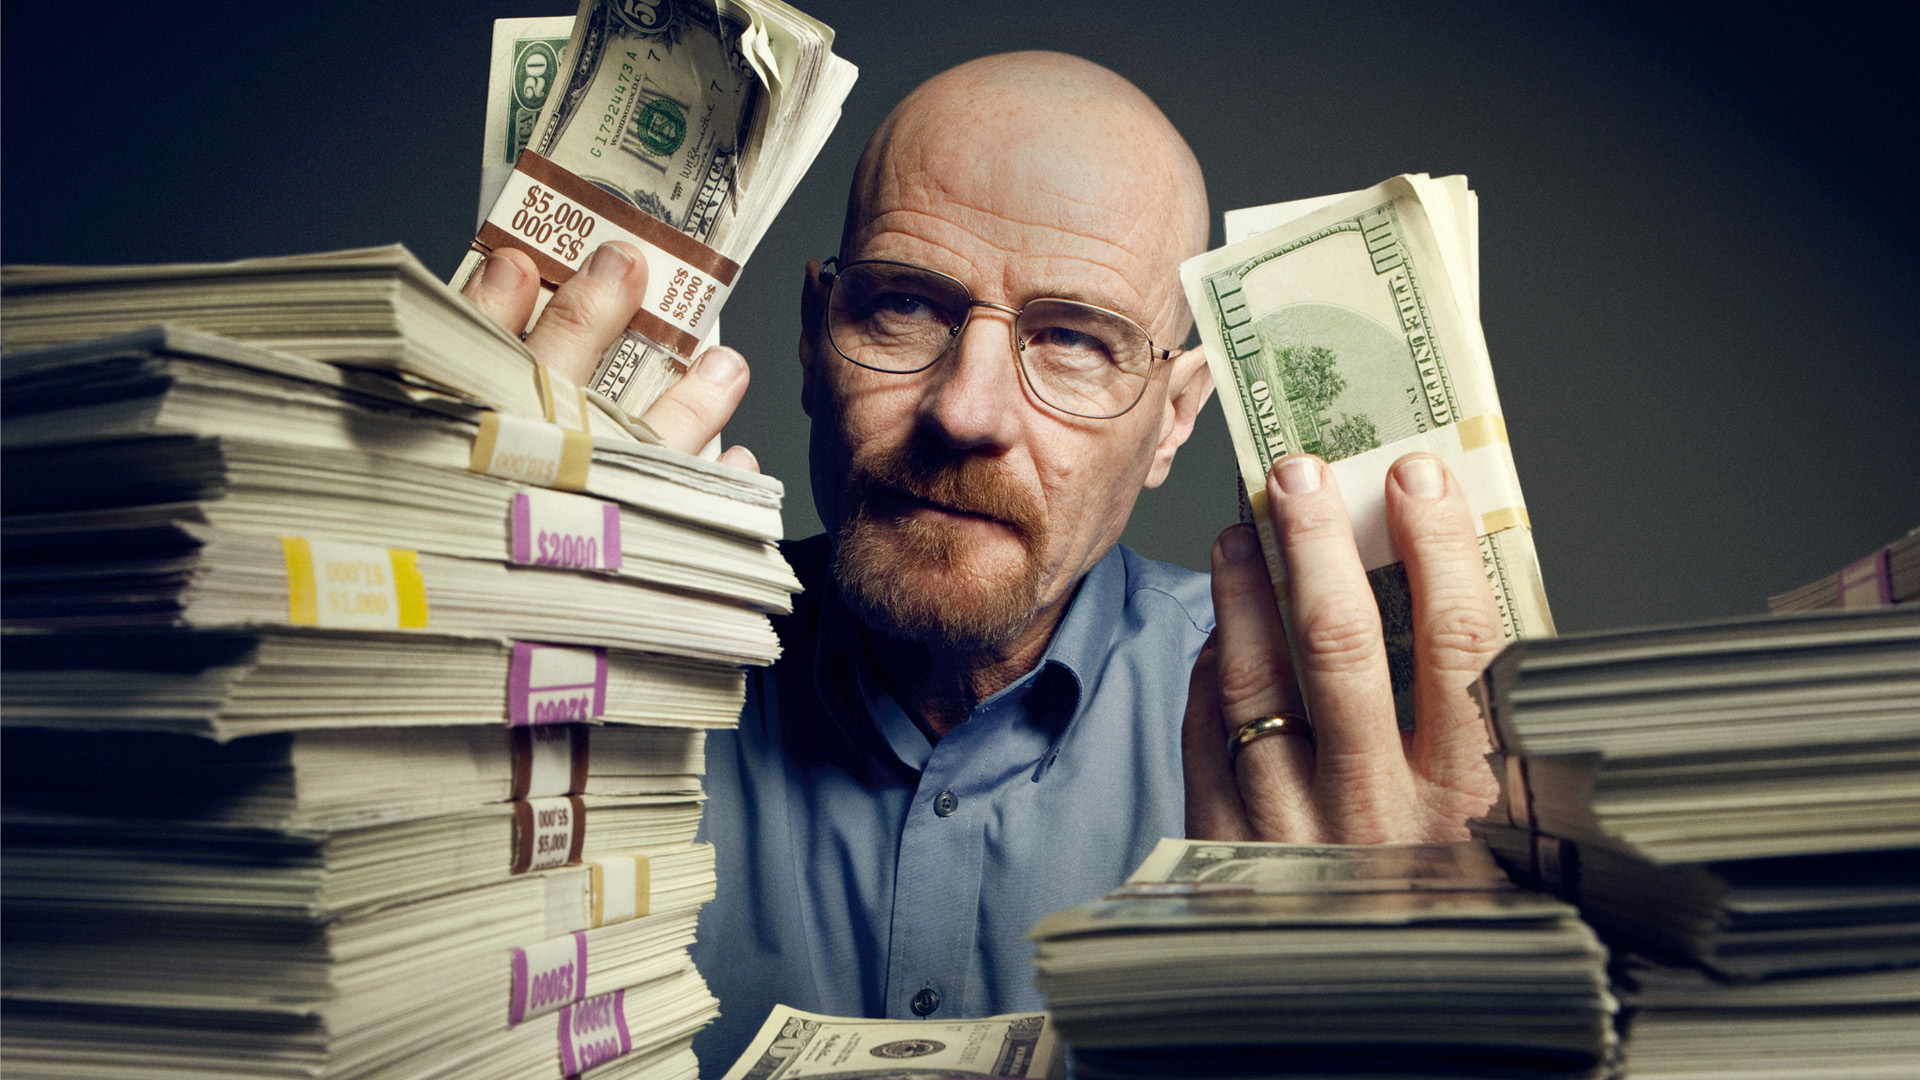 Breaking Bad wallpaper 18